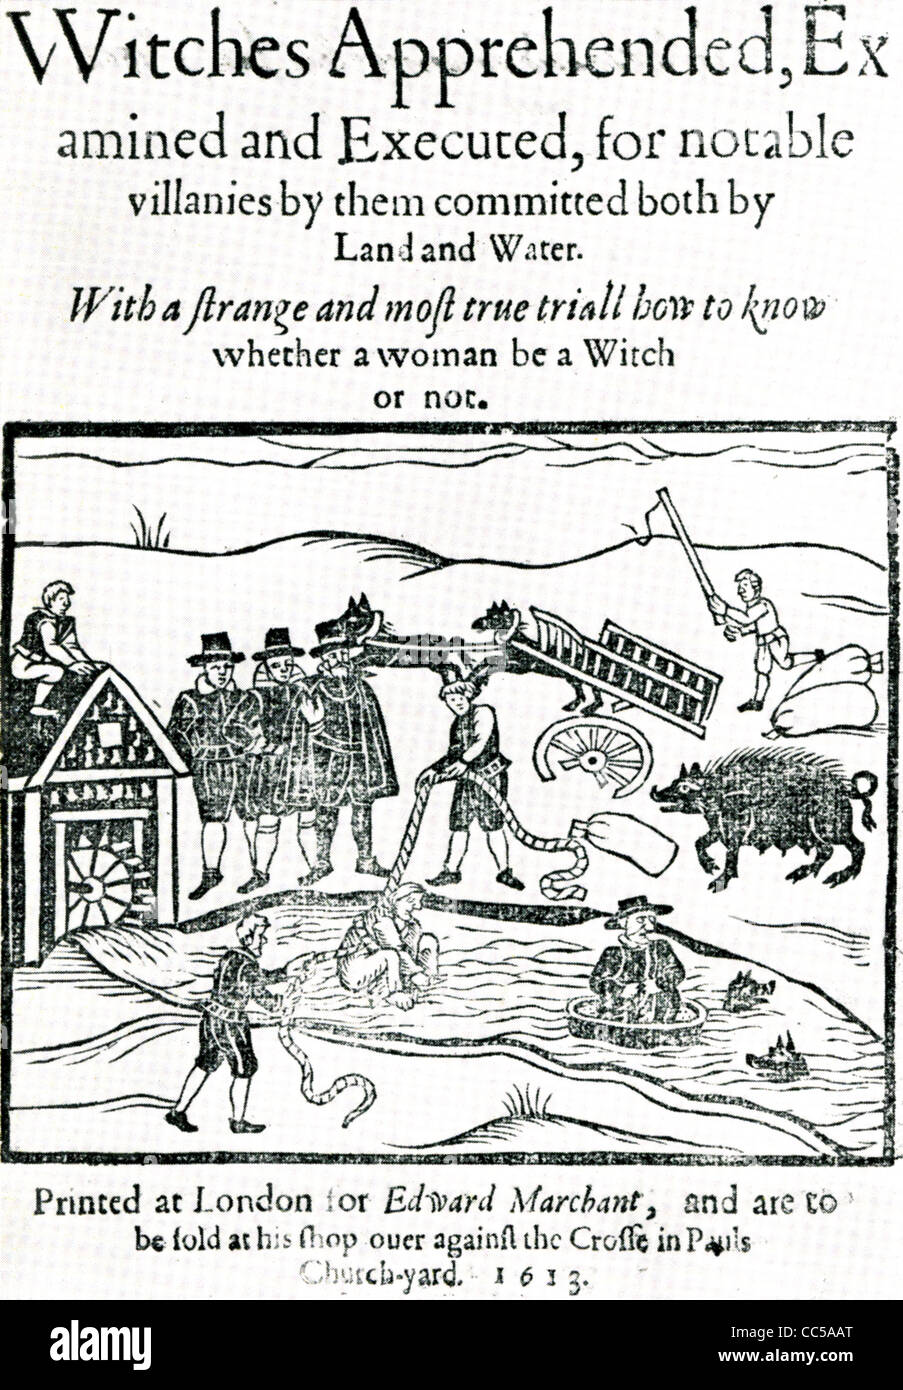 WITCHES APPREHENDED....Title page of a book on witchcraft published in 1613 - Stock Image